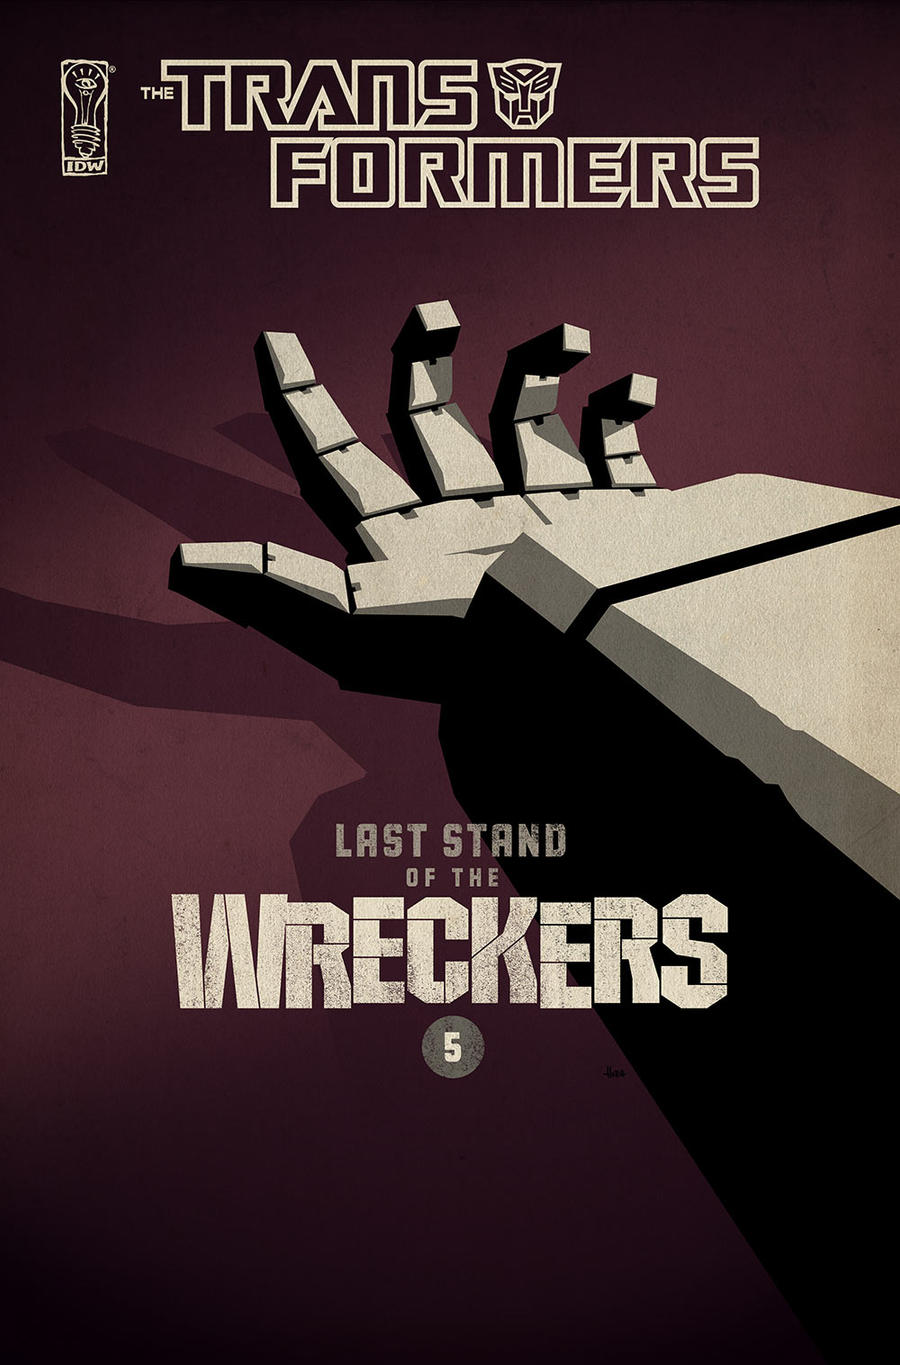 Last Stand of the Wreckers 5